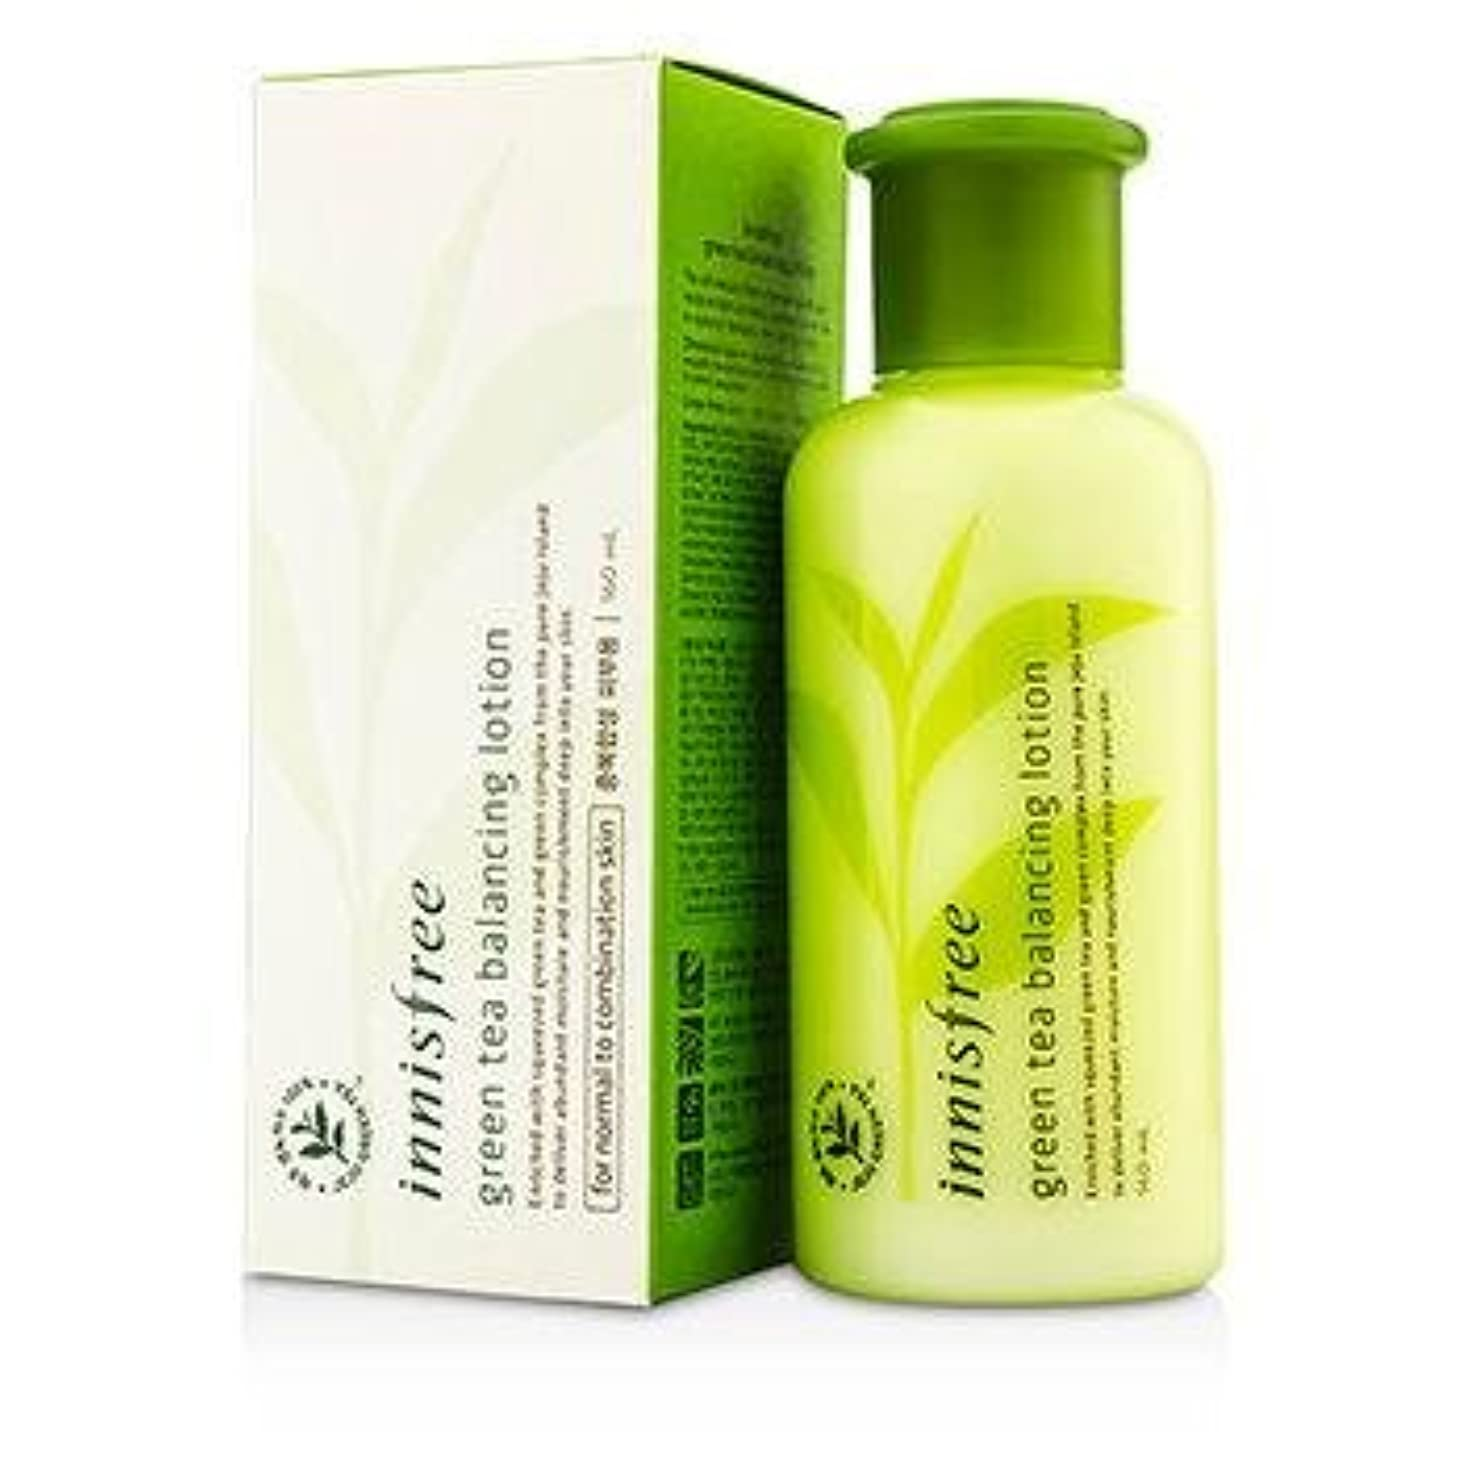 良心ガードエコーINNISFREE Greentea Balancing Lotion (並行輸入品)